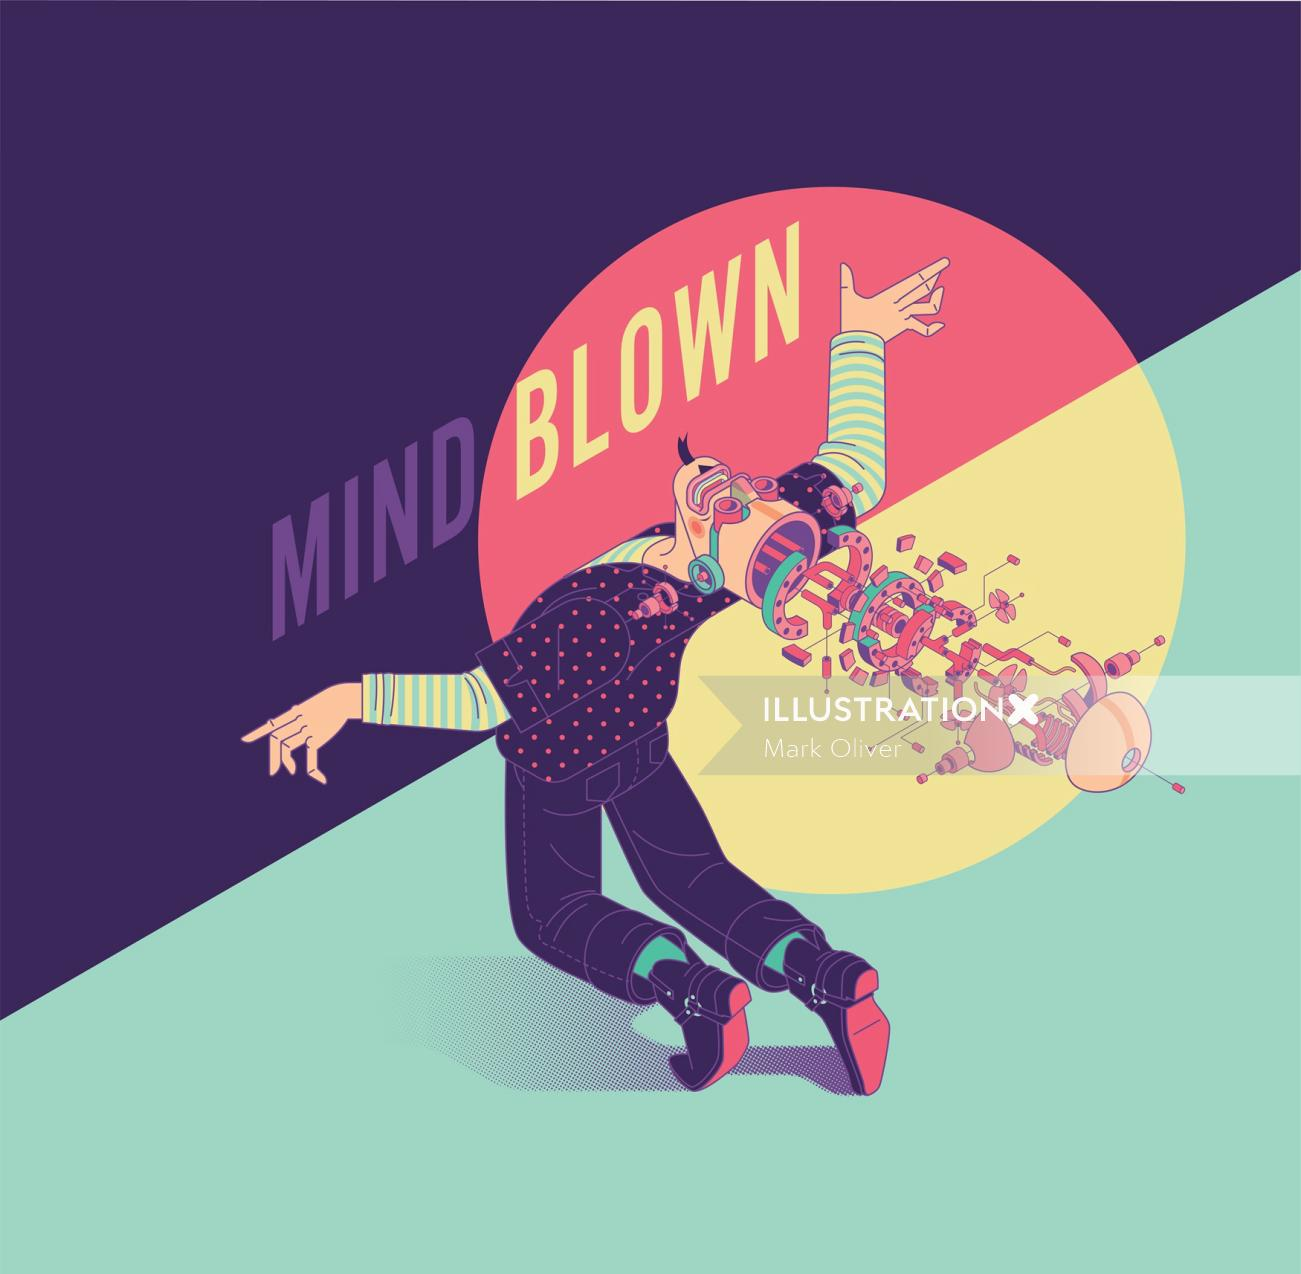 Graphic illustration of Mind blown